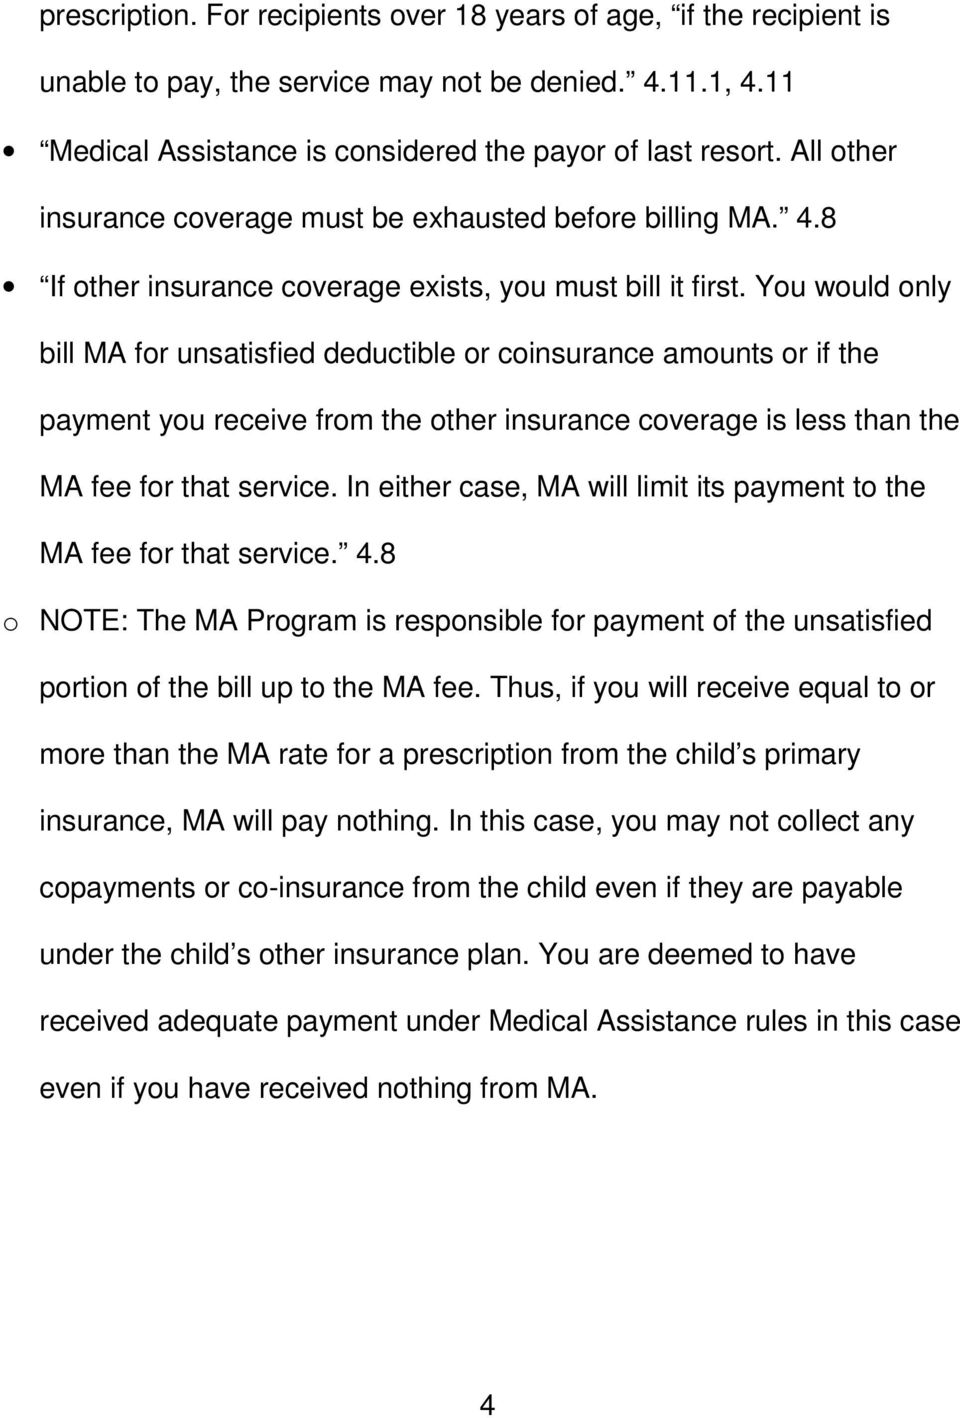 You would only bill MA for unsatisfied deductible or coinsurance amounts or if the payment you receive from the other insurance coverage is less than the MA fee for that service.